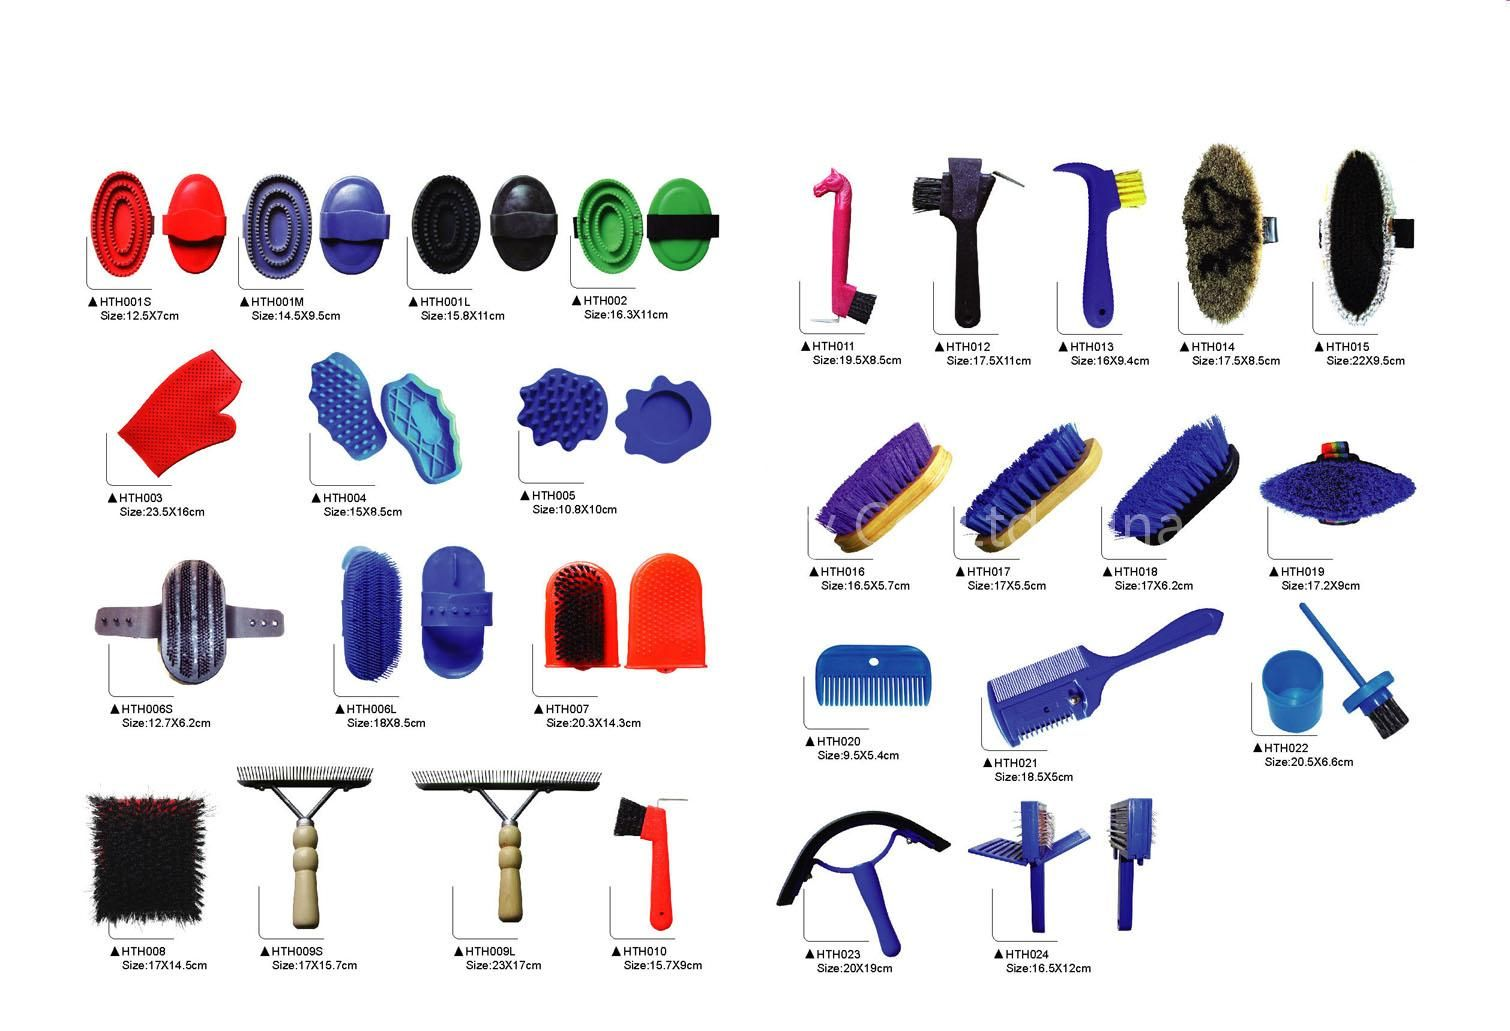 image about Grooming Tools for Horses Printable Worksheet titled Horse Brushes Diagram Wiring Diagram